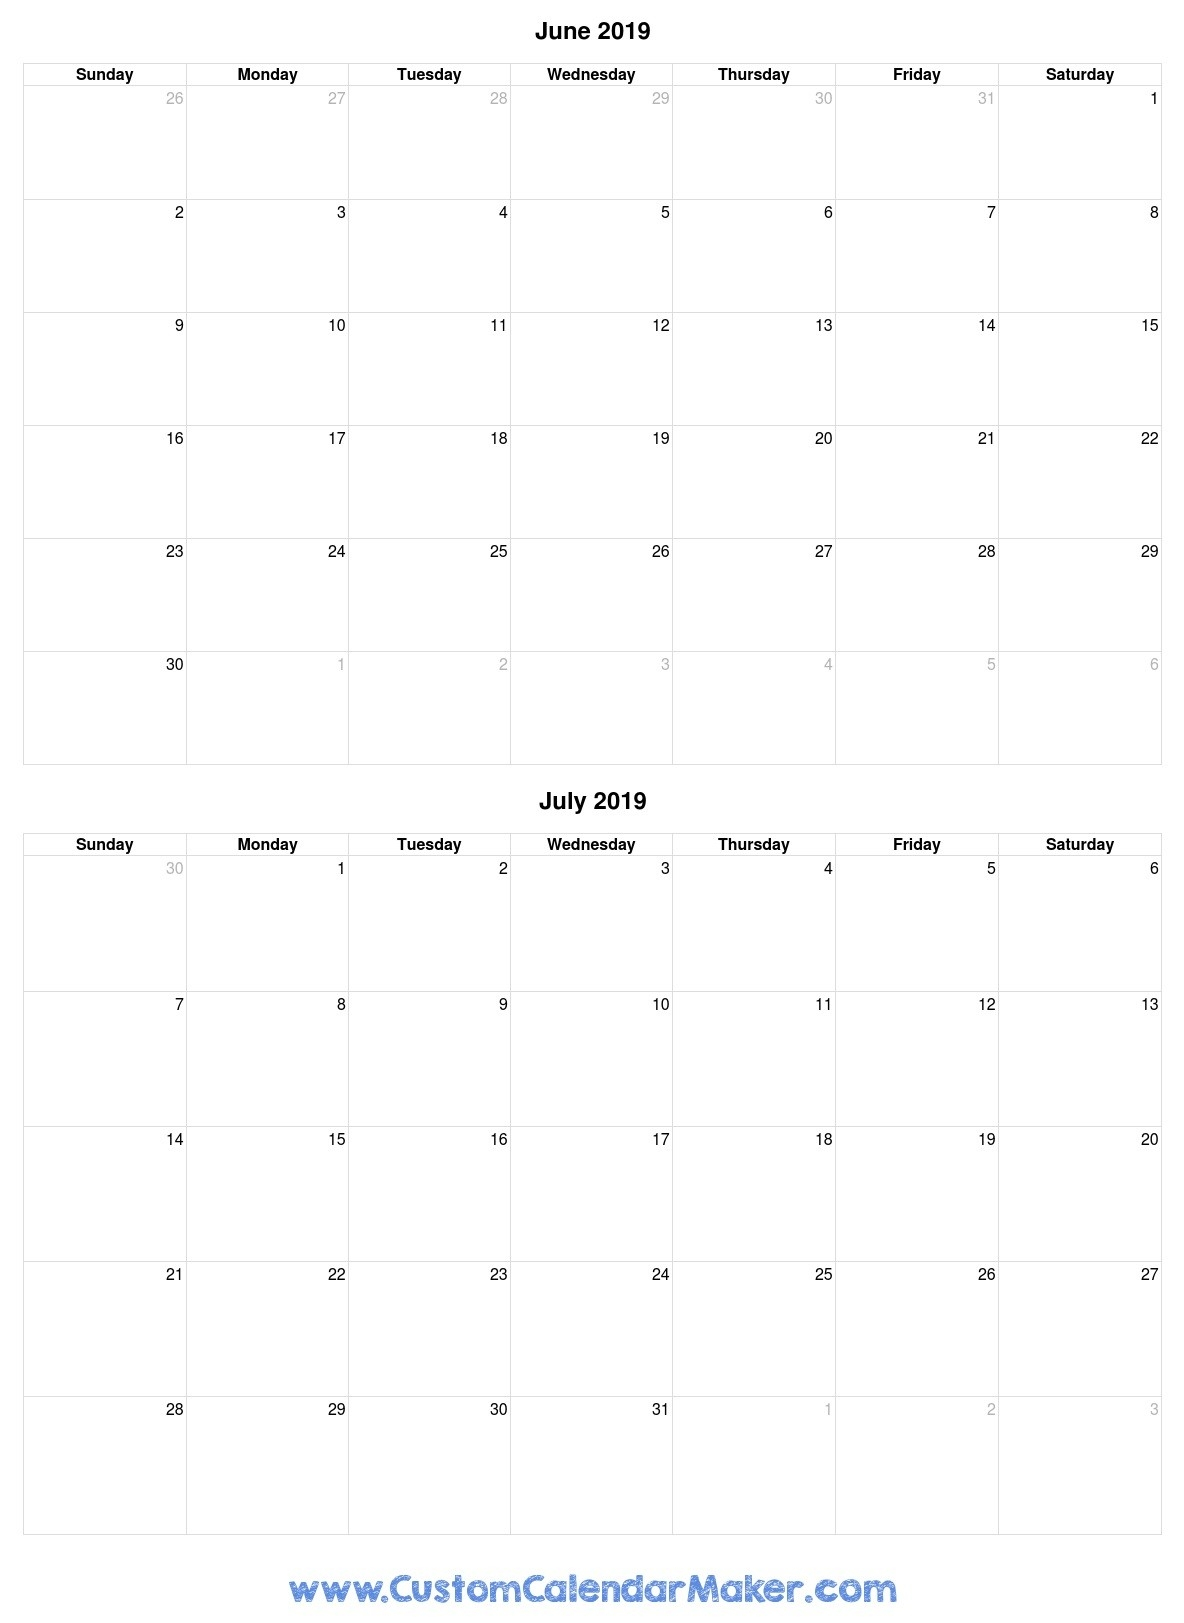 June And July 2019 Free Printable Calendar Template-June And July Blank Calendar